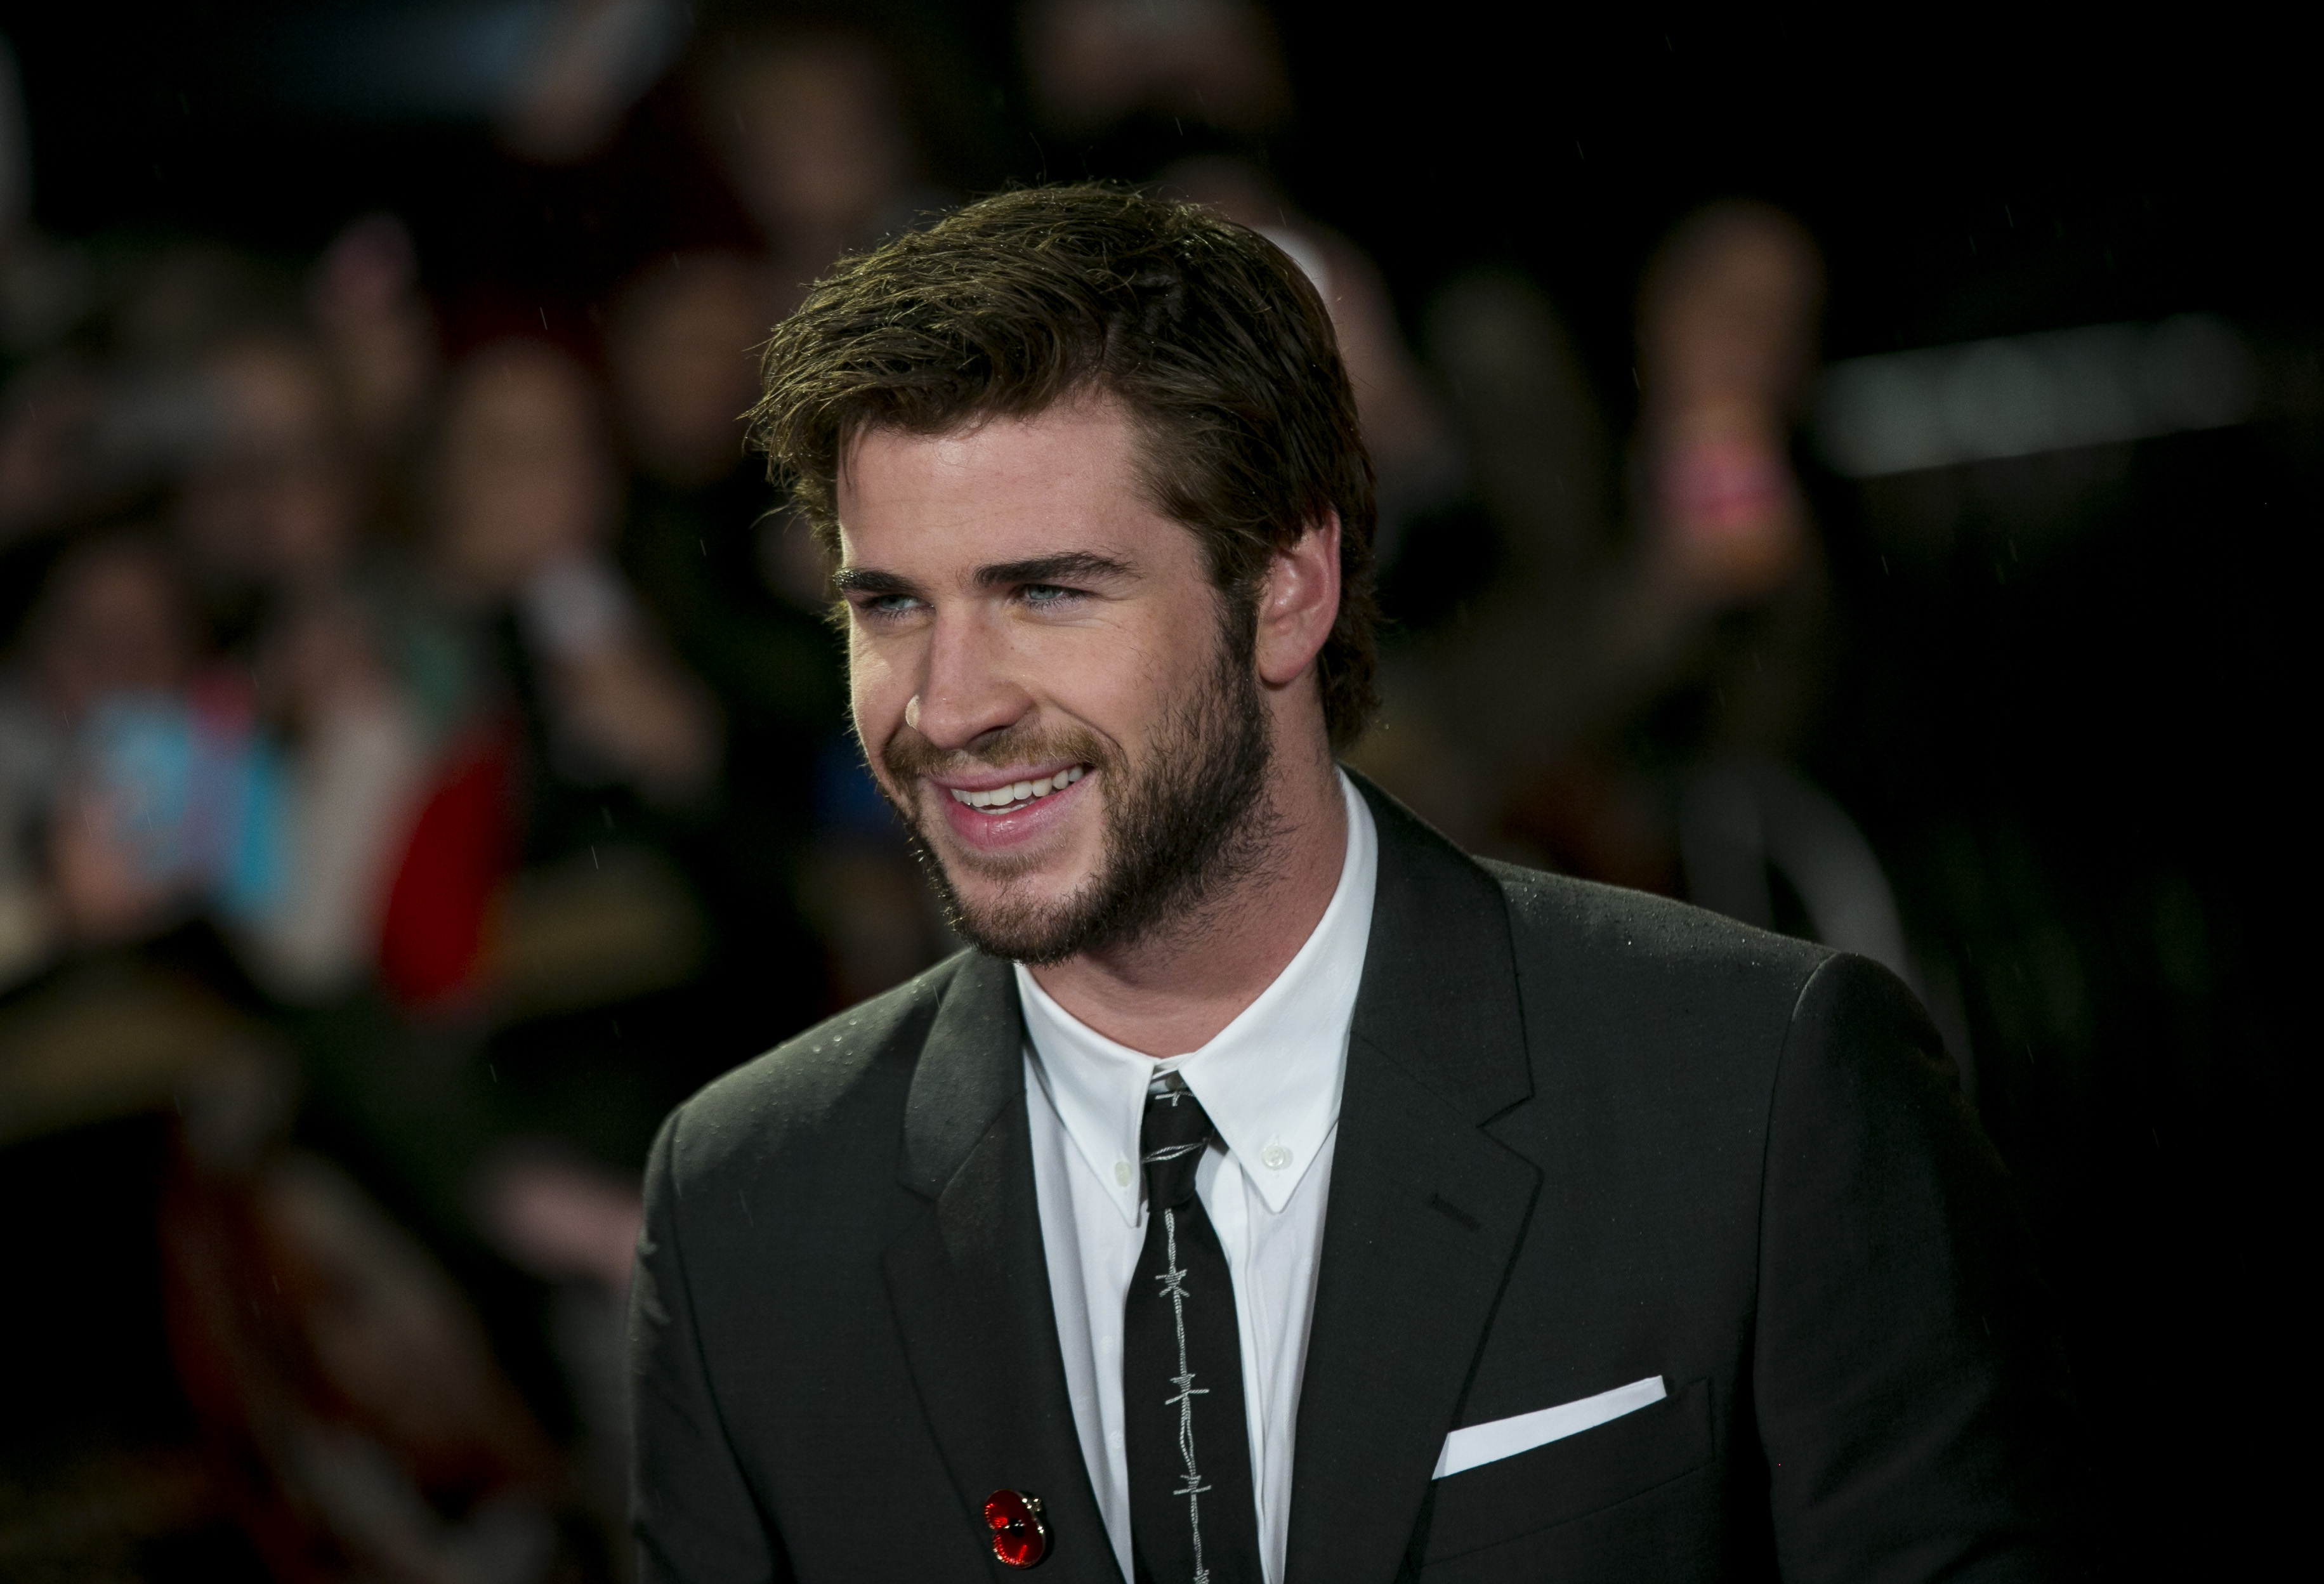 LONDON, UNITED KINGDOM - NOVEMBER 11: Liam Hemsworth attends the UK Premiere of  The Hunger Games: Catching Fire  at Odeon Leicester Square on November 11, 2013 in London, England. (Photo by John Phillips/UK Press via Getty Images)